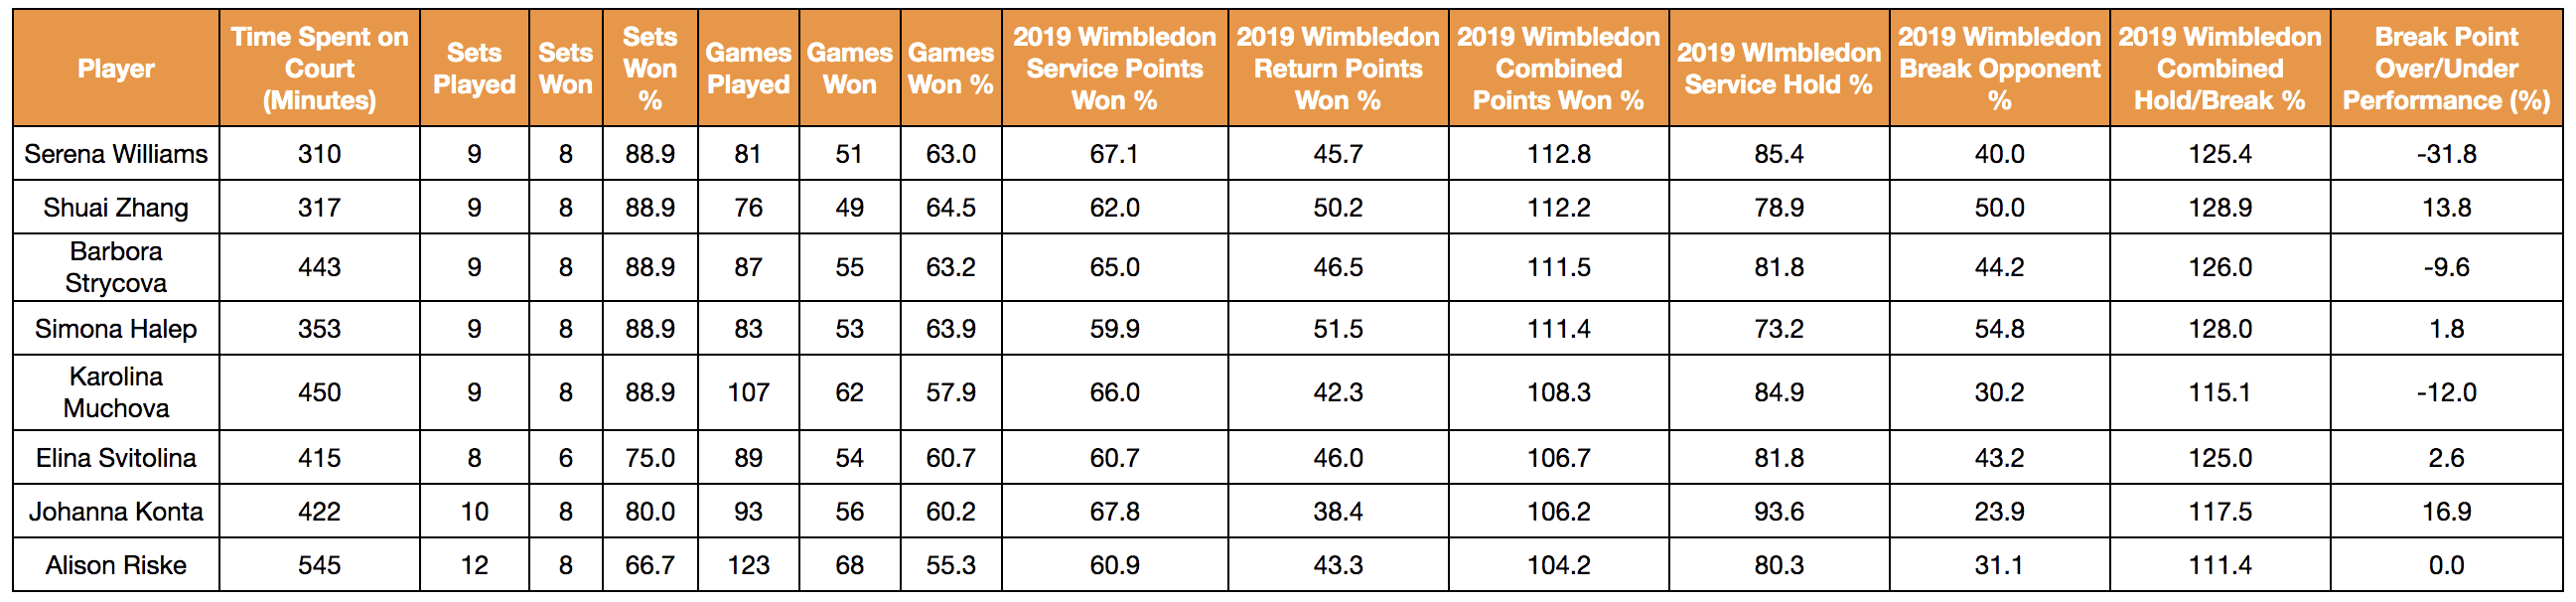 2019 Wimbledon Women's Singles Data